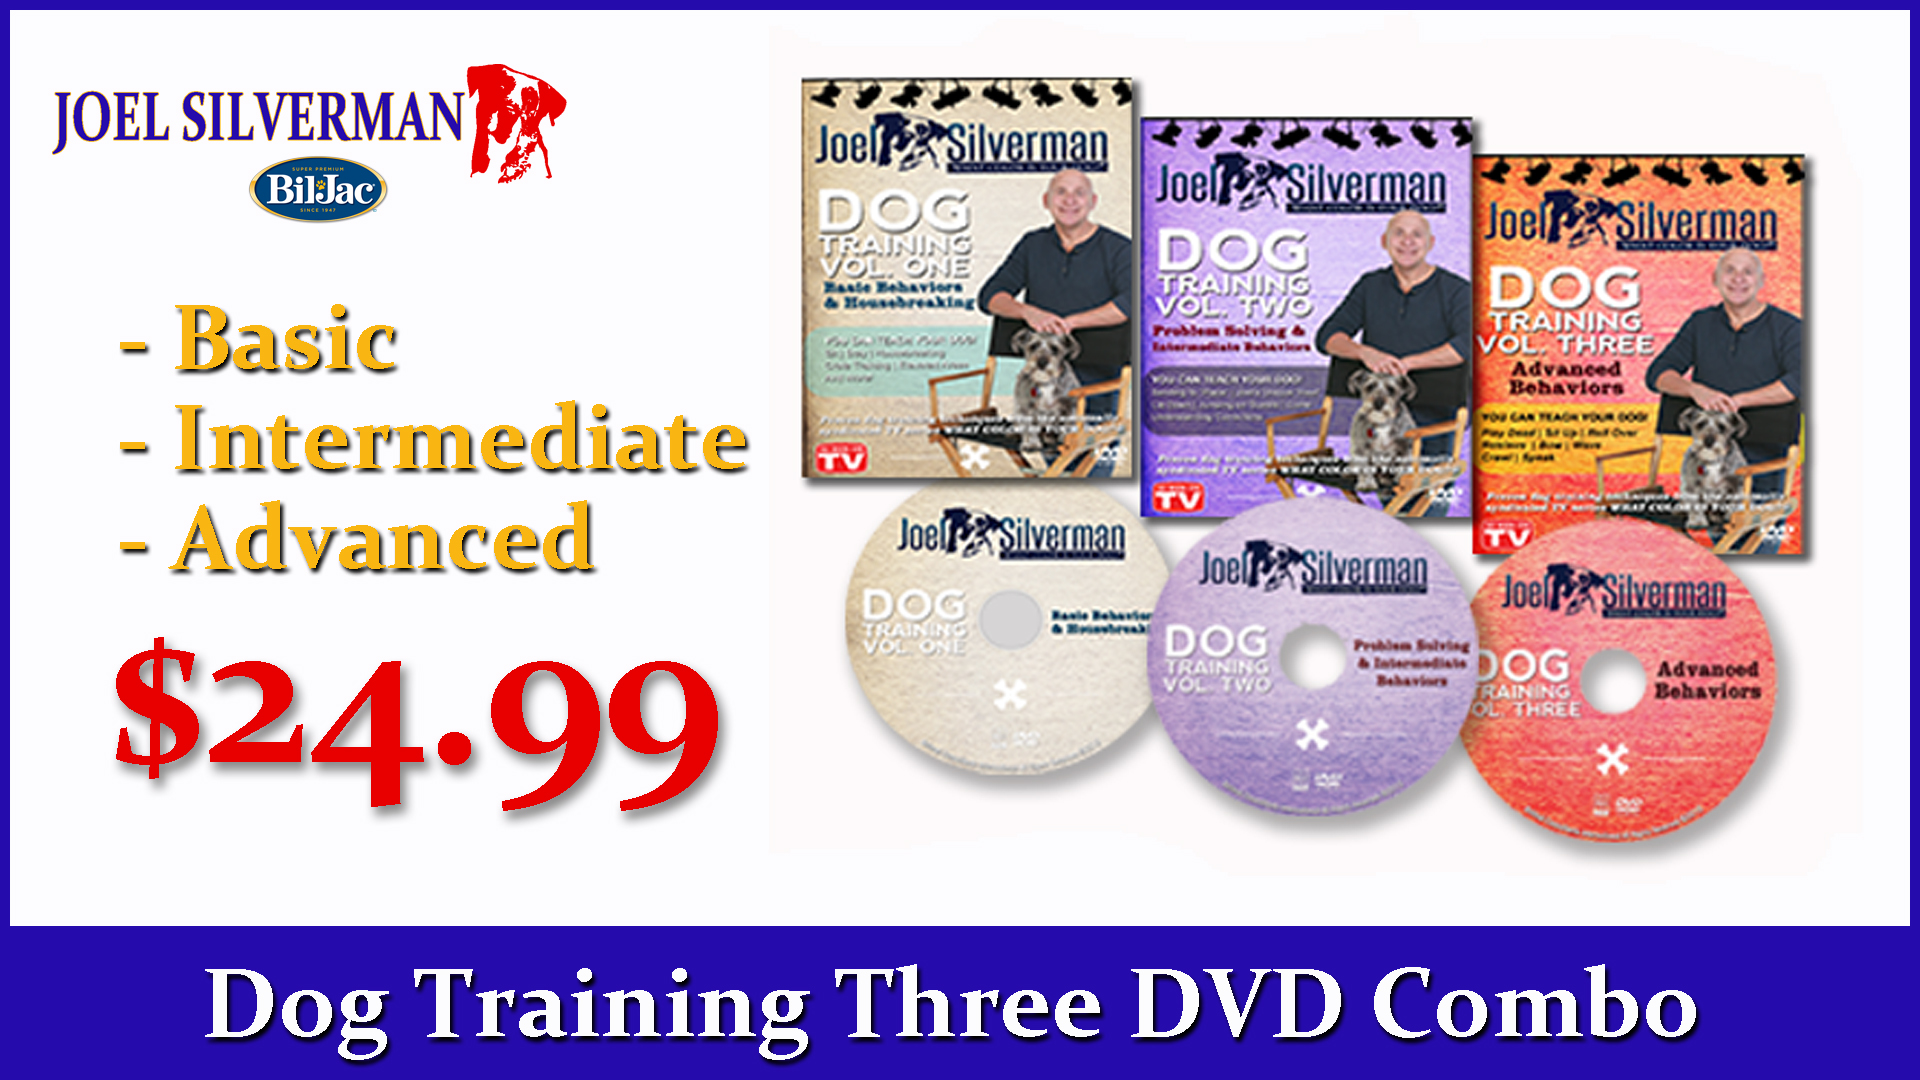 Joel Silverman's Deluxe 3 DVD Dog Training Combo (2015)